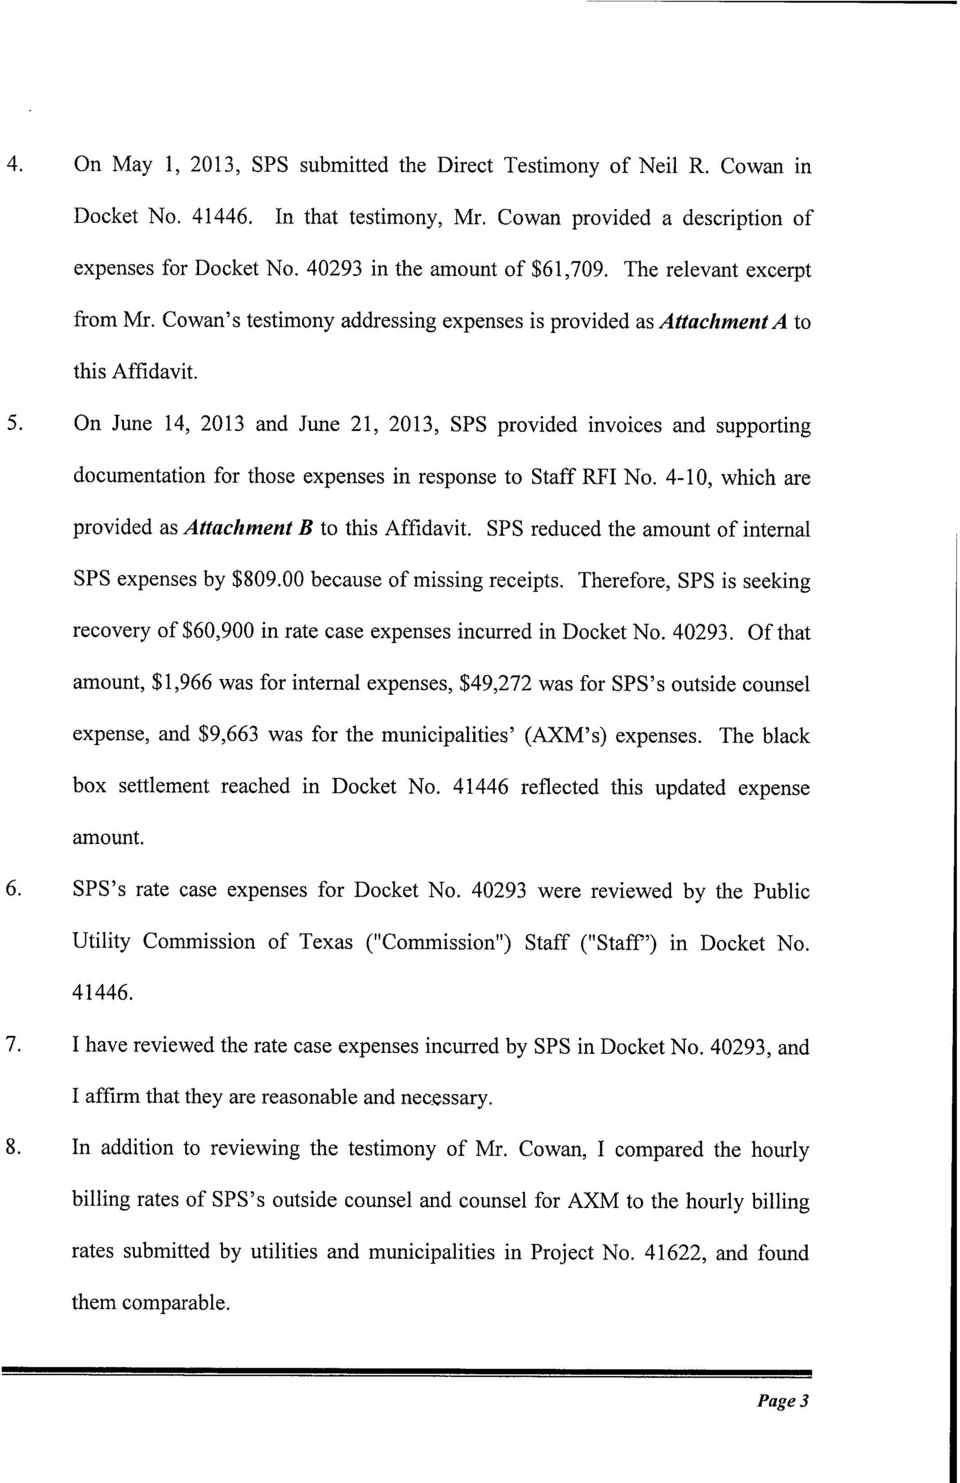 On June 14, 2013 and June 21, 2013, SPS provided invoices and supporting documentation for those expenses in response to Staff RFI No. 4-10, which are provided as Attachment B to this Affidavit.